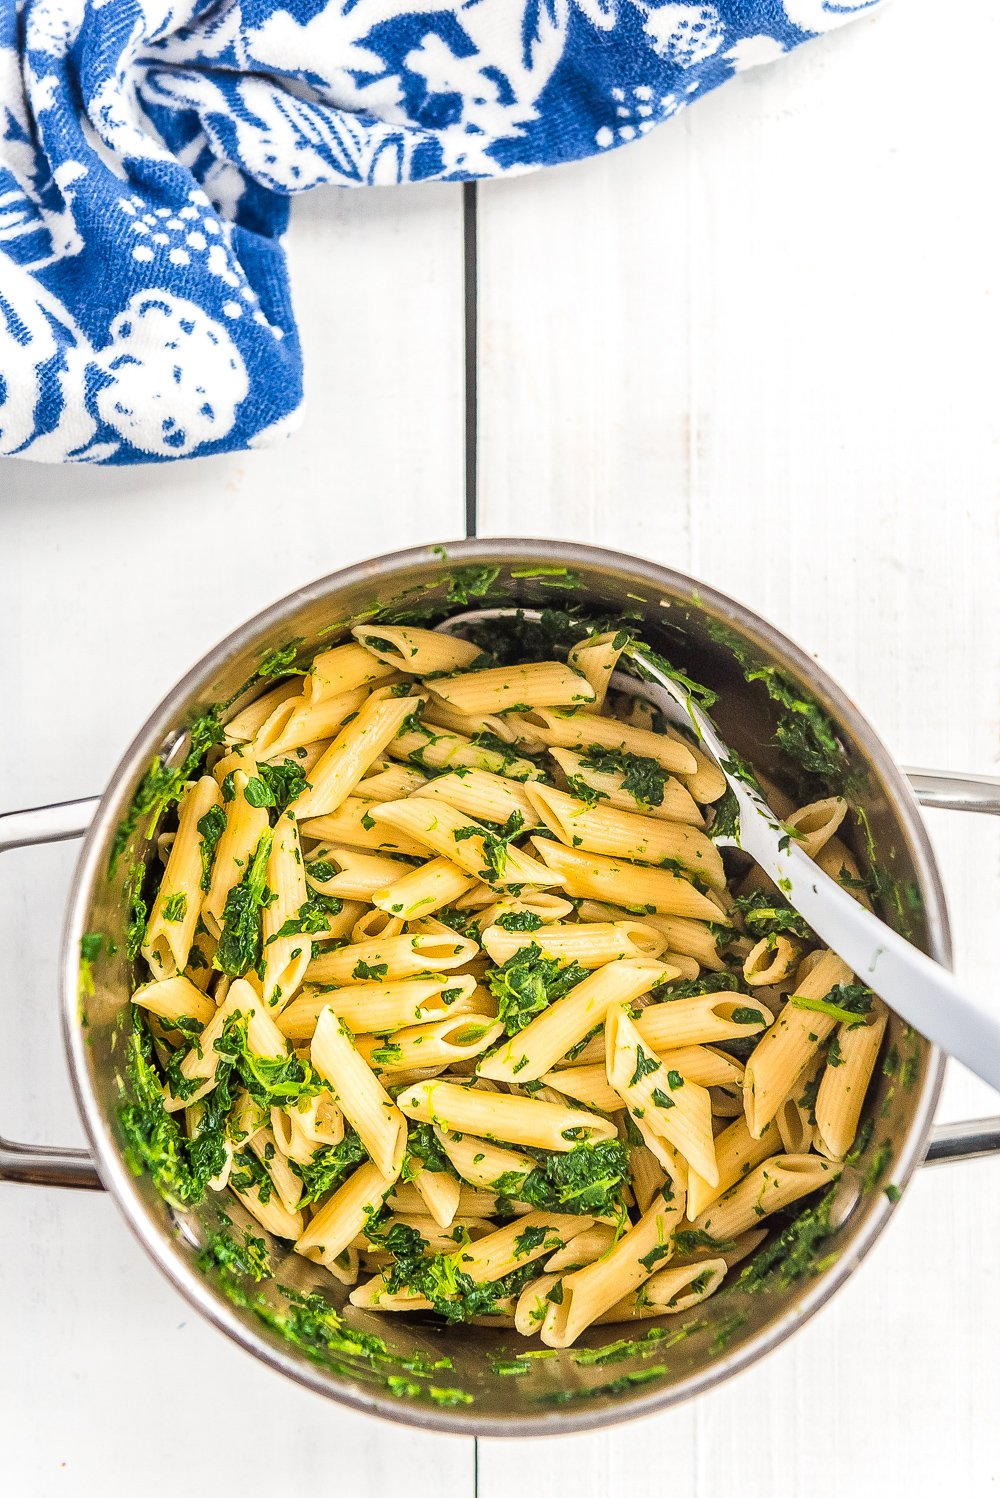 Cooked pasta in a pot with spinach on white wood table with blue and white napkin.